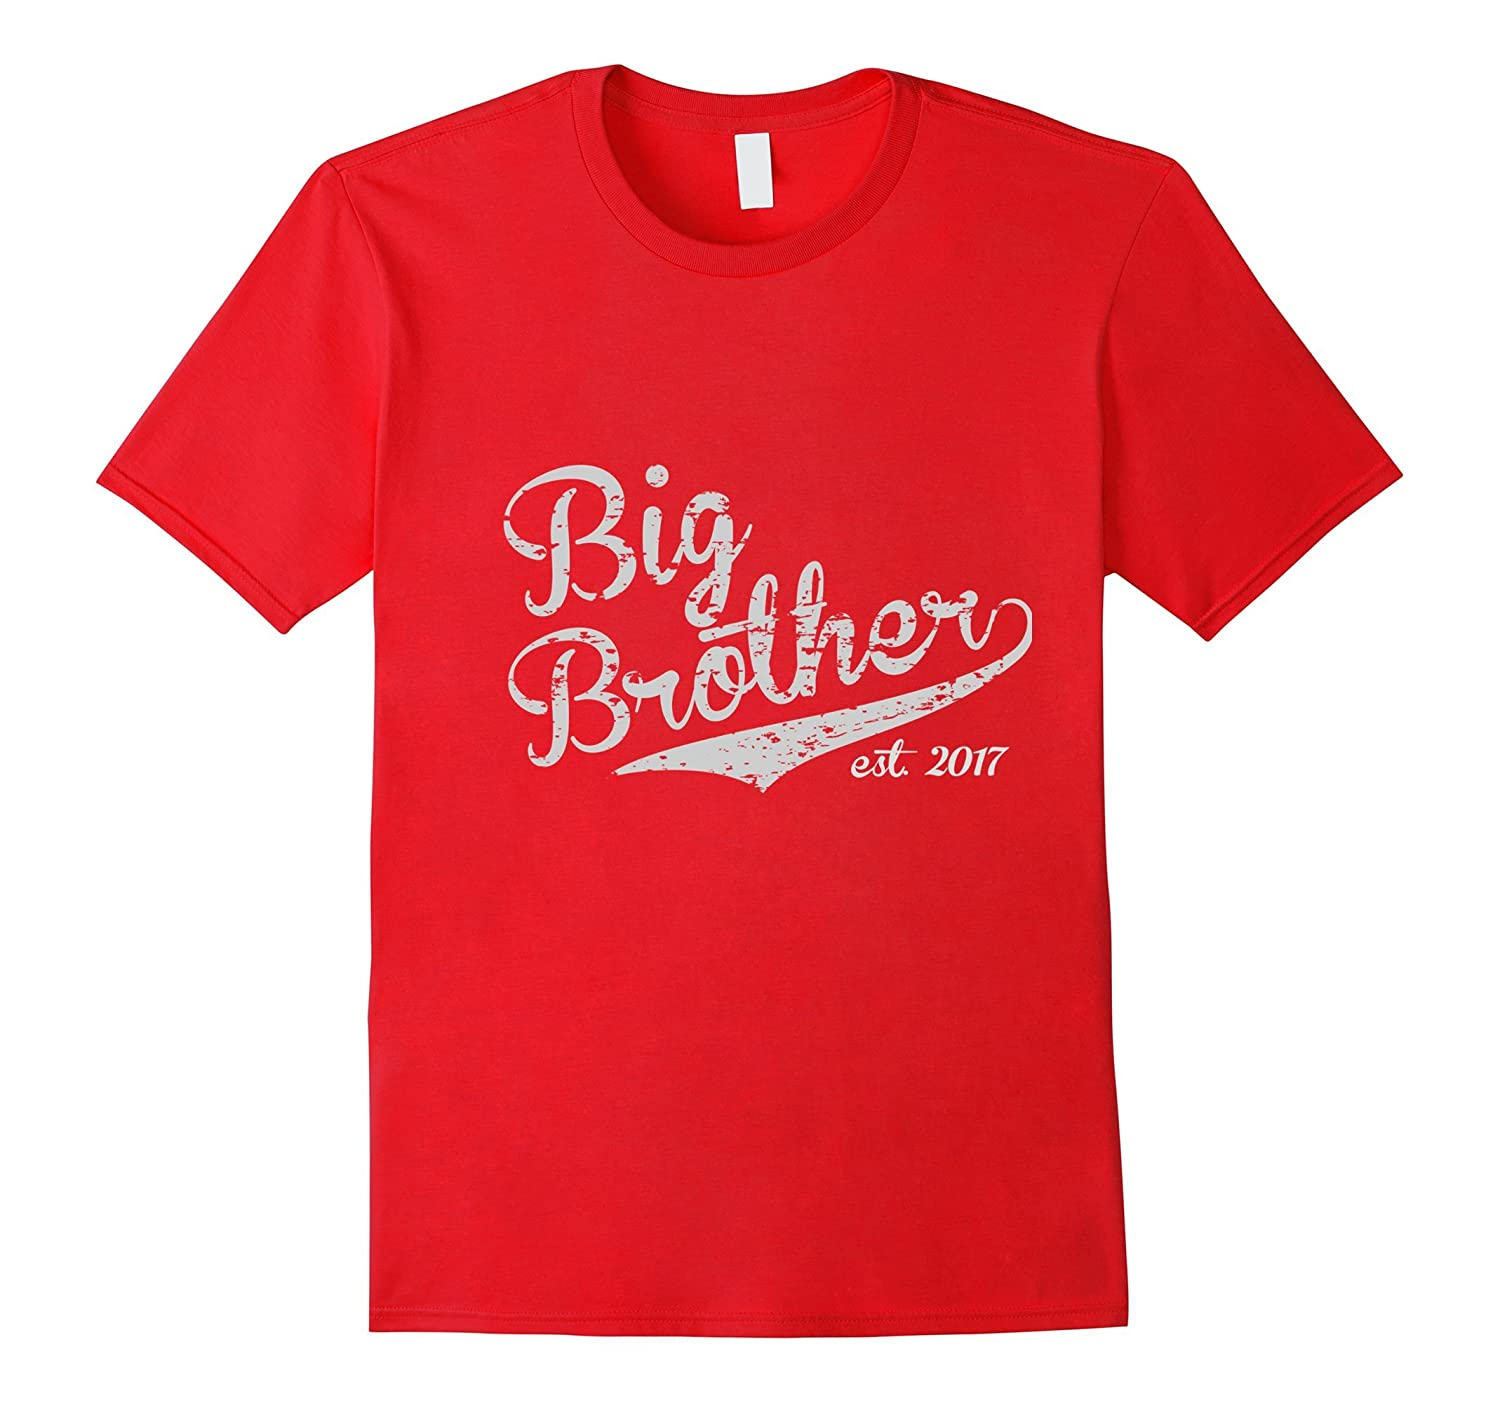 Big Brother Est 2017 Vintage Style Tee - Adult  Youth Size-CD